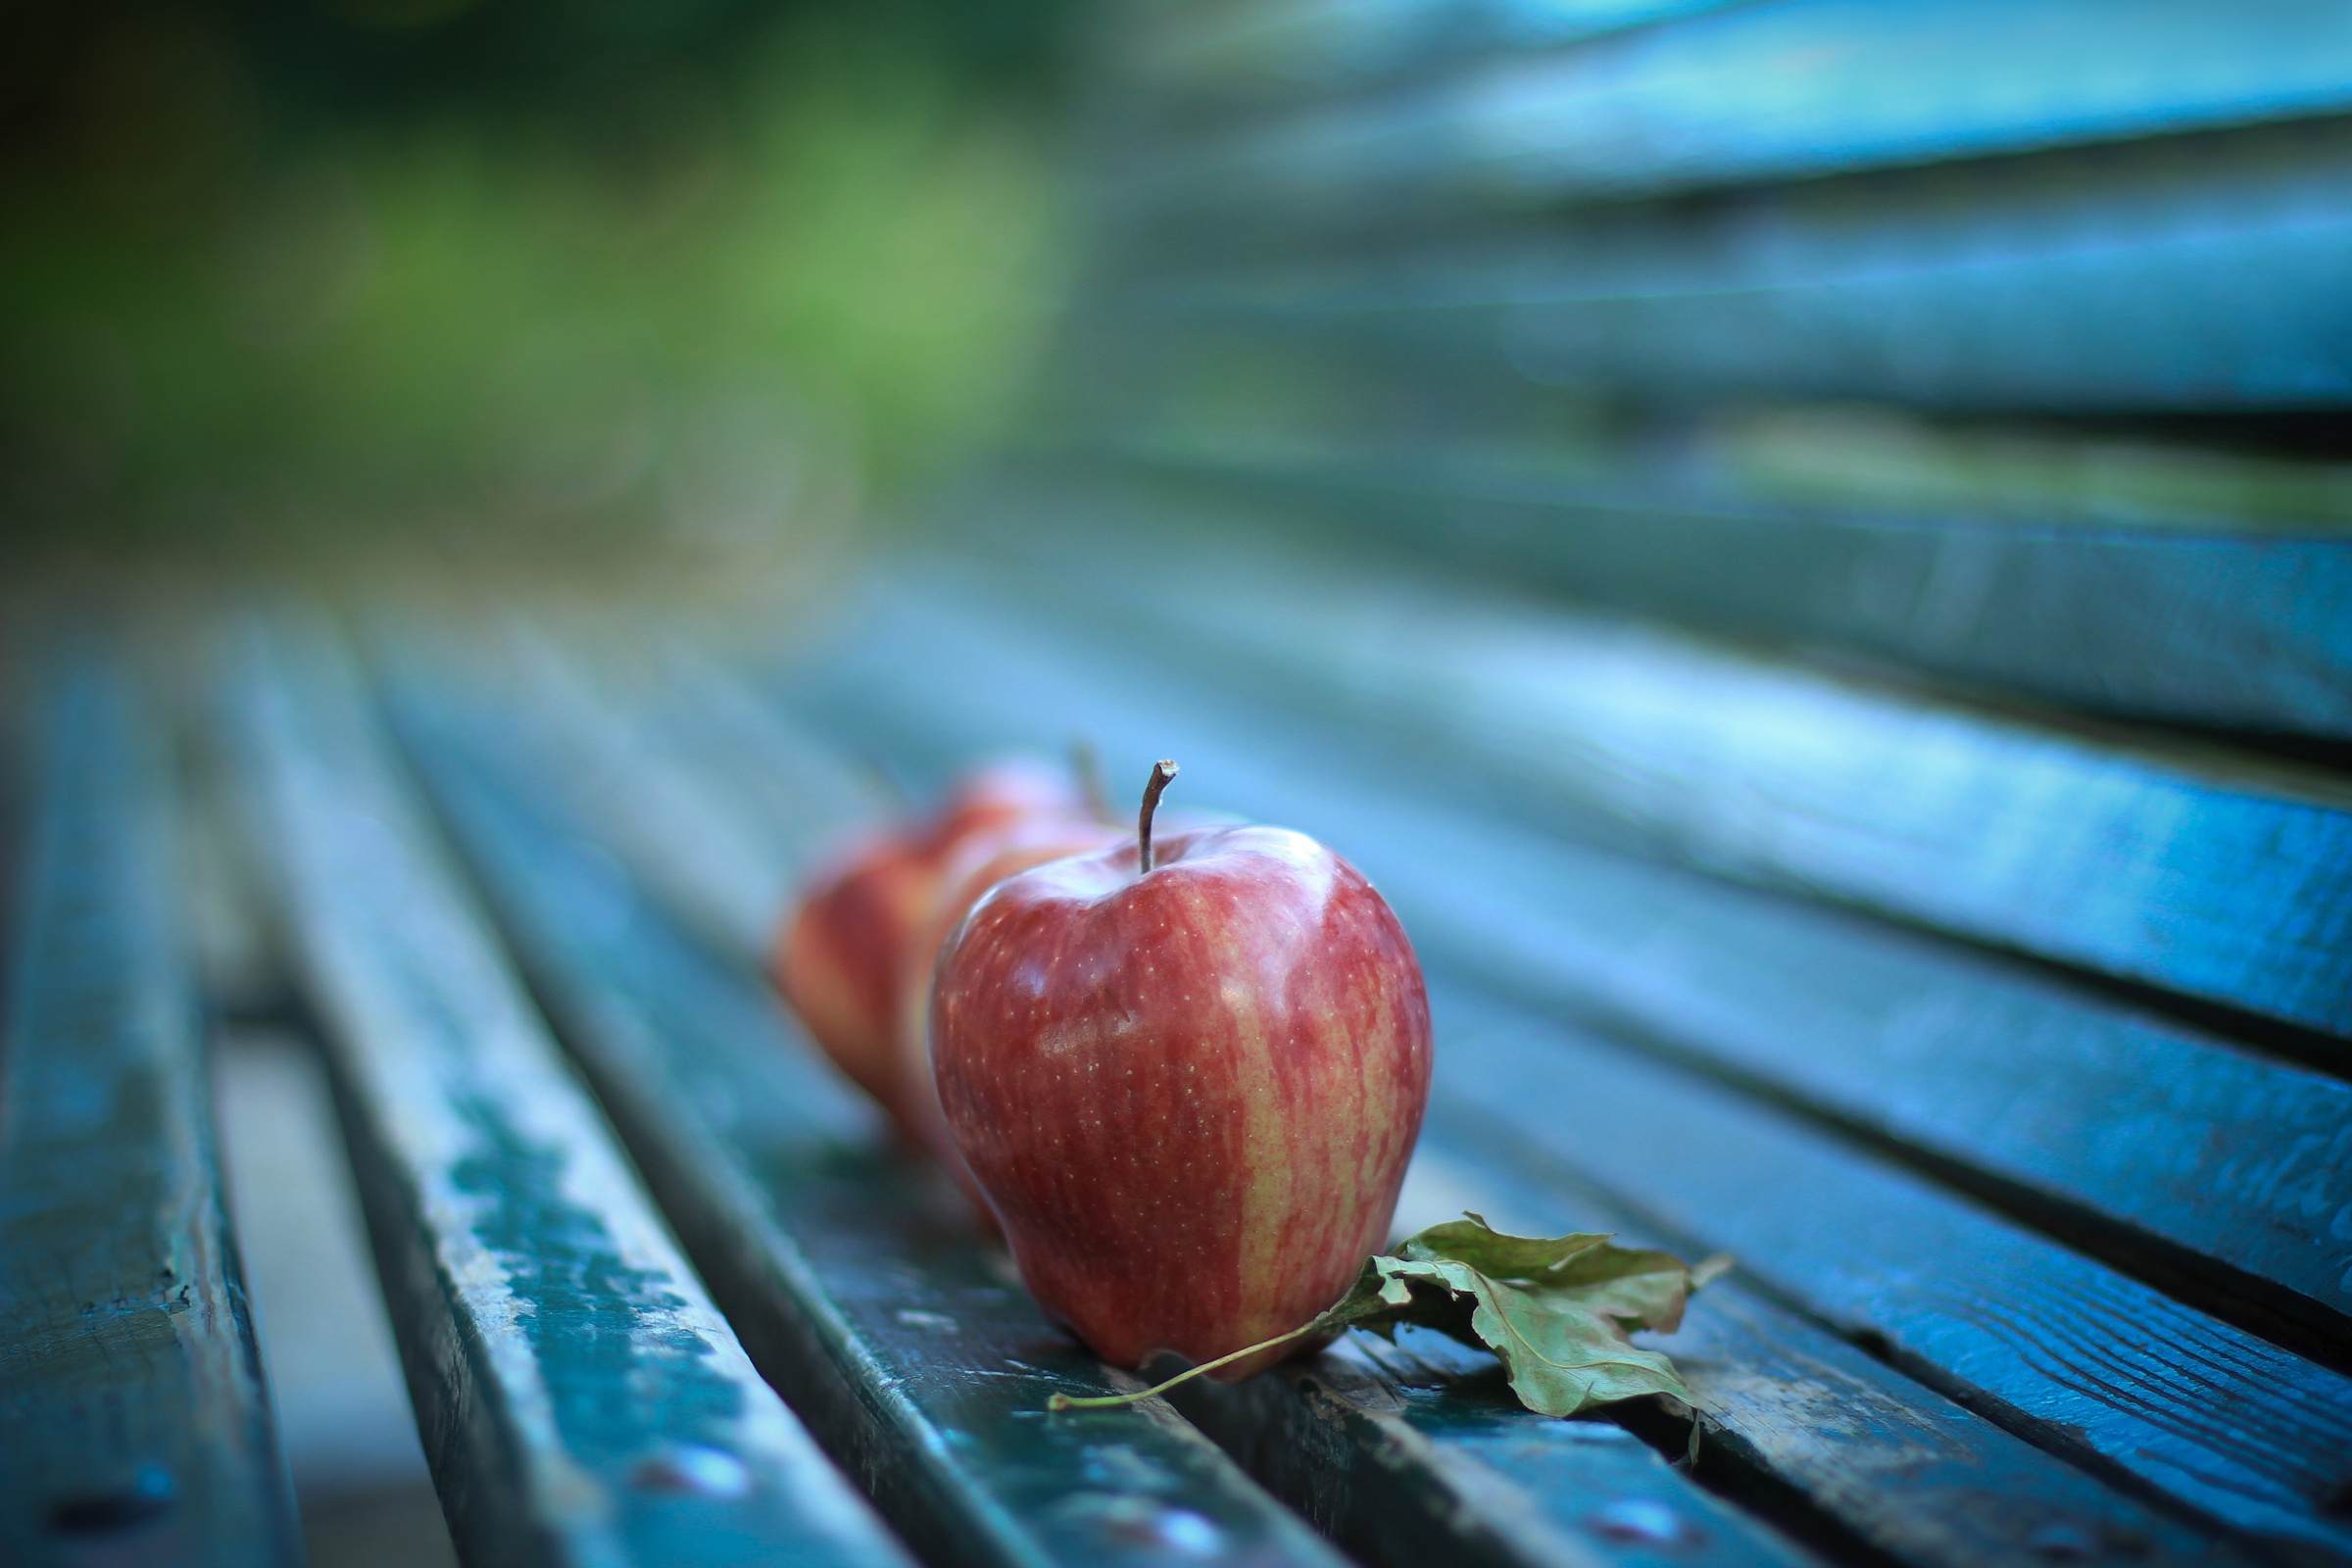 Apple Ripe Bench   Stock Photos Images HD Wallpaper HD Picture 2400x1600